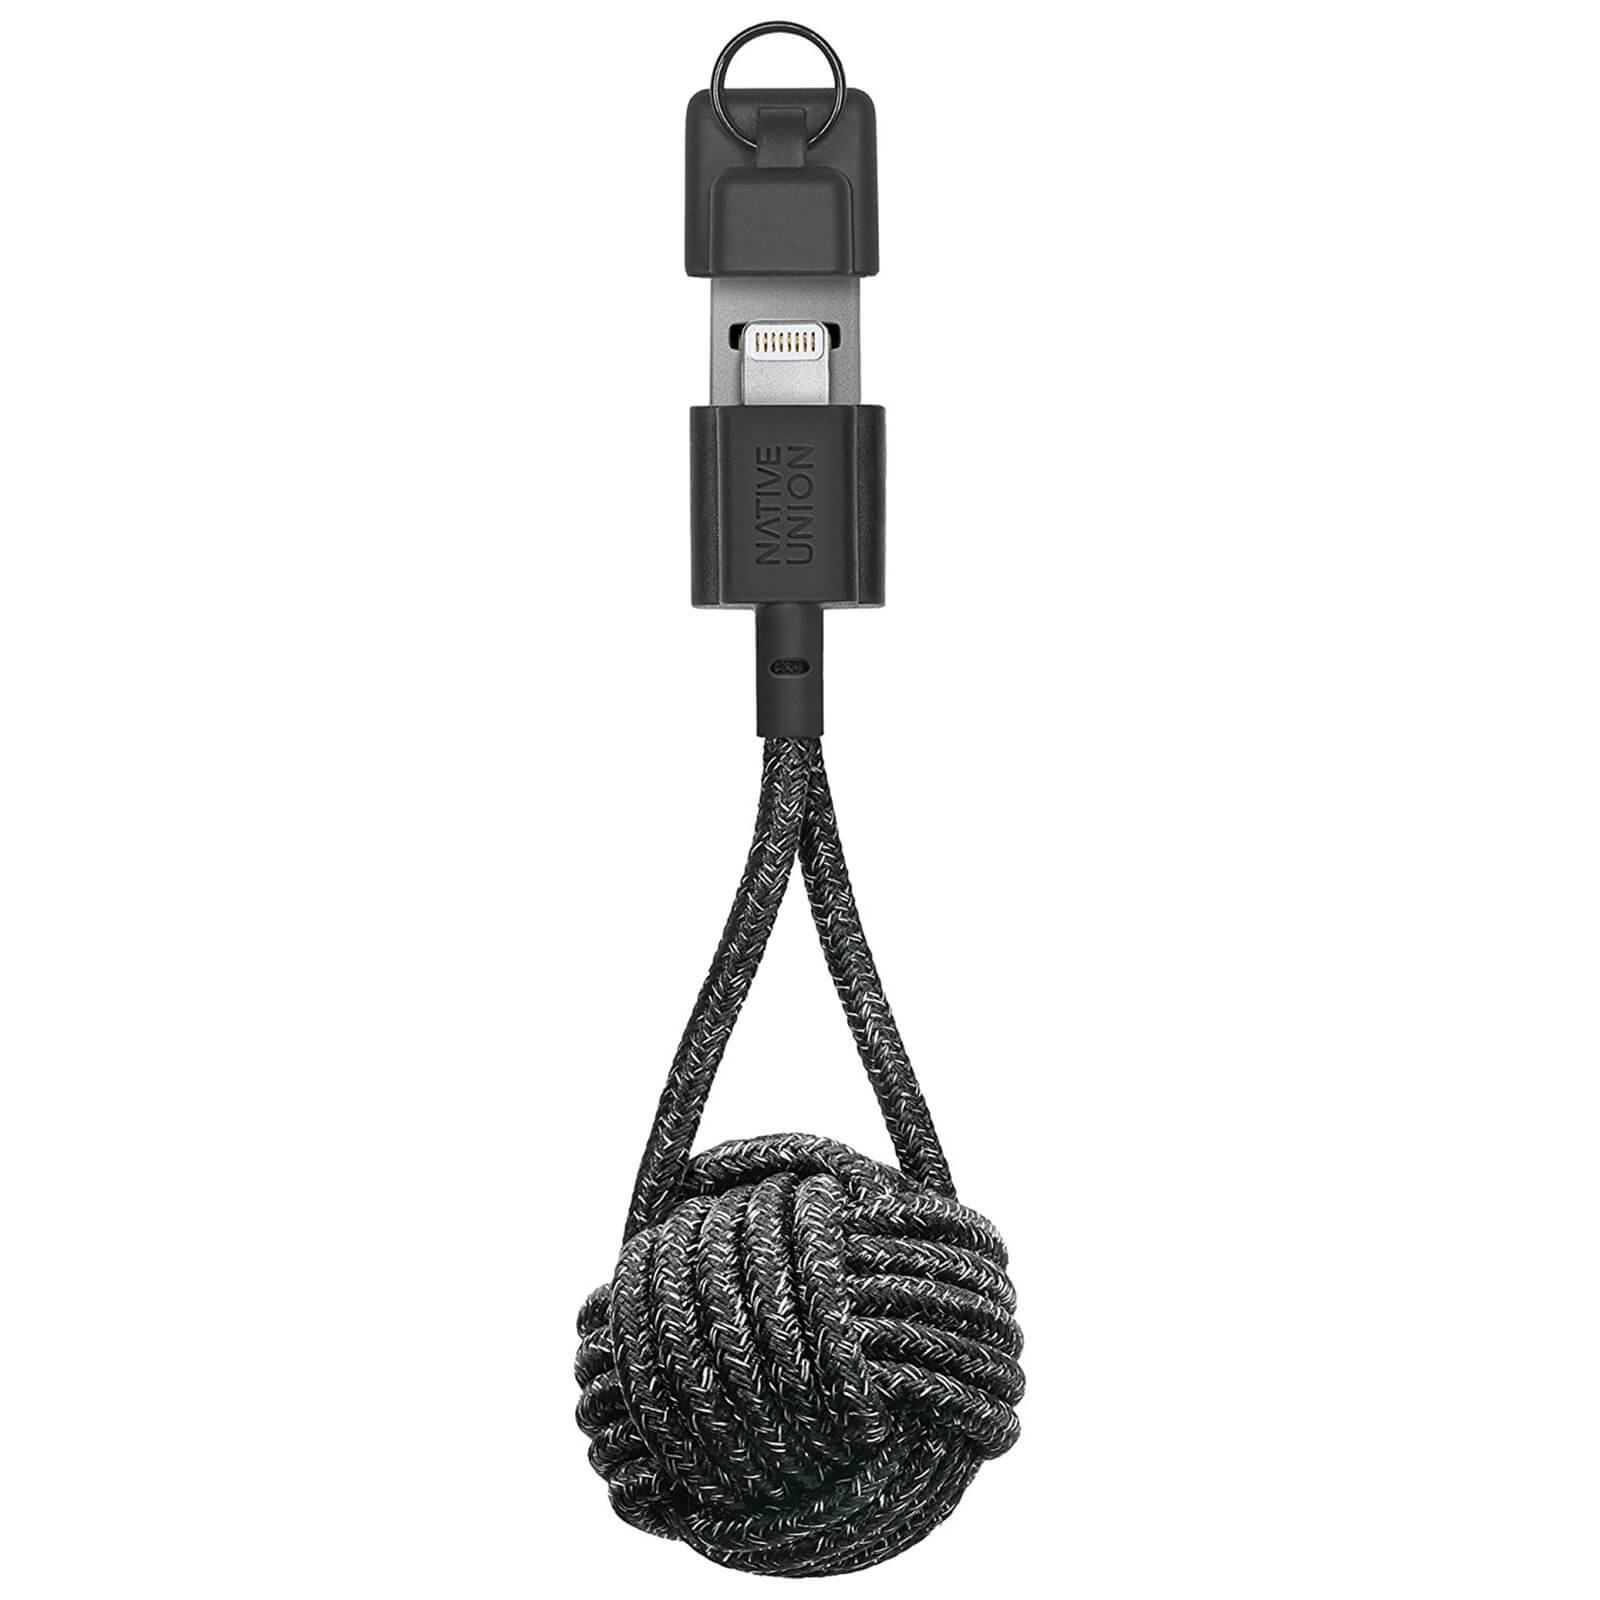 Native Union Key Cable - Cosmos